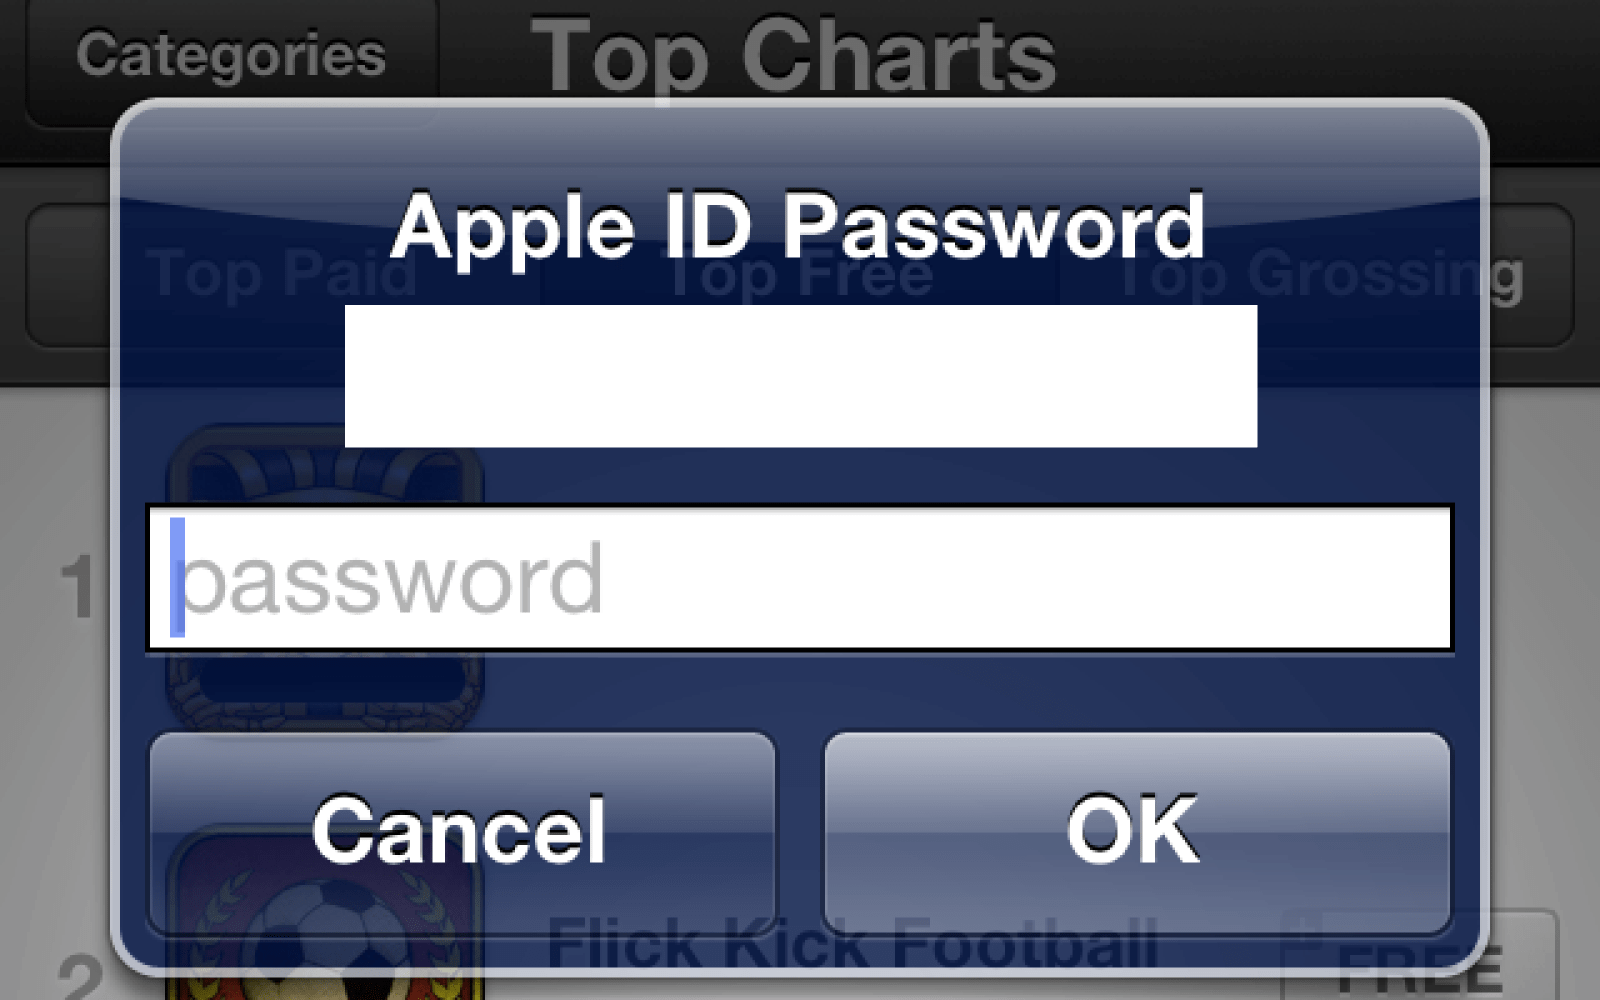 Free app download password requirement in iOS 6 appears to